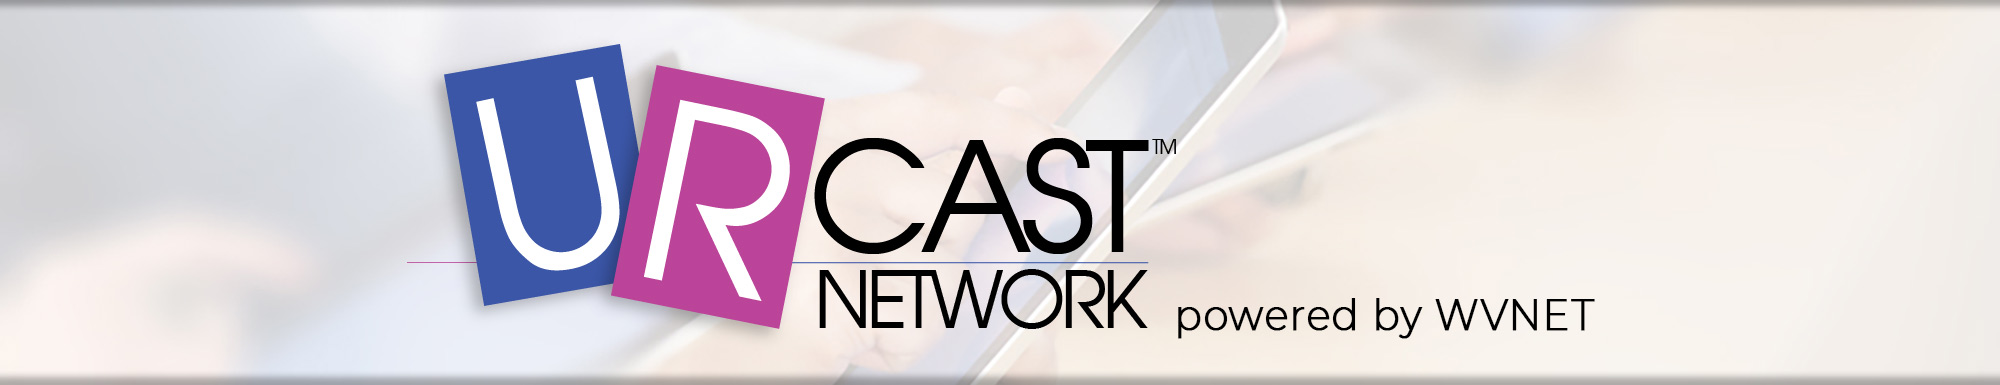 URcast Network powered by WVNET